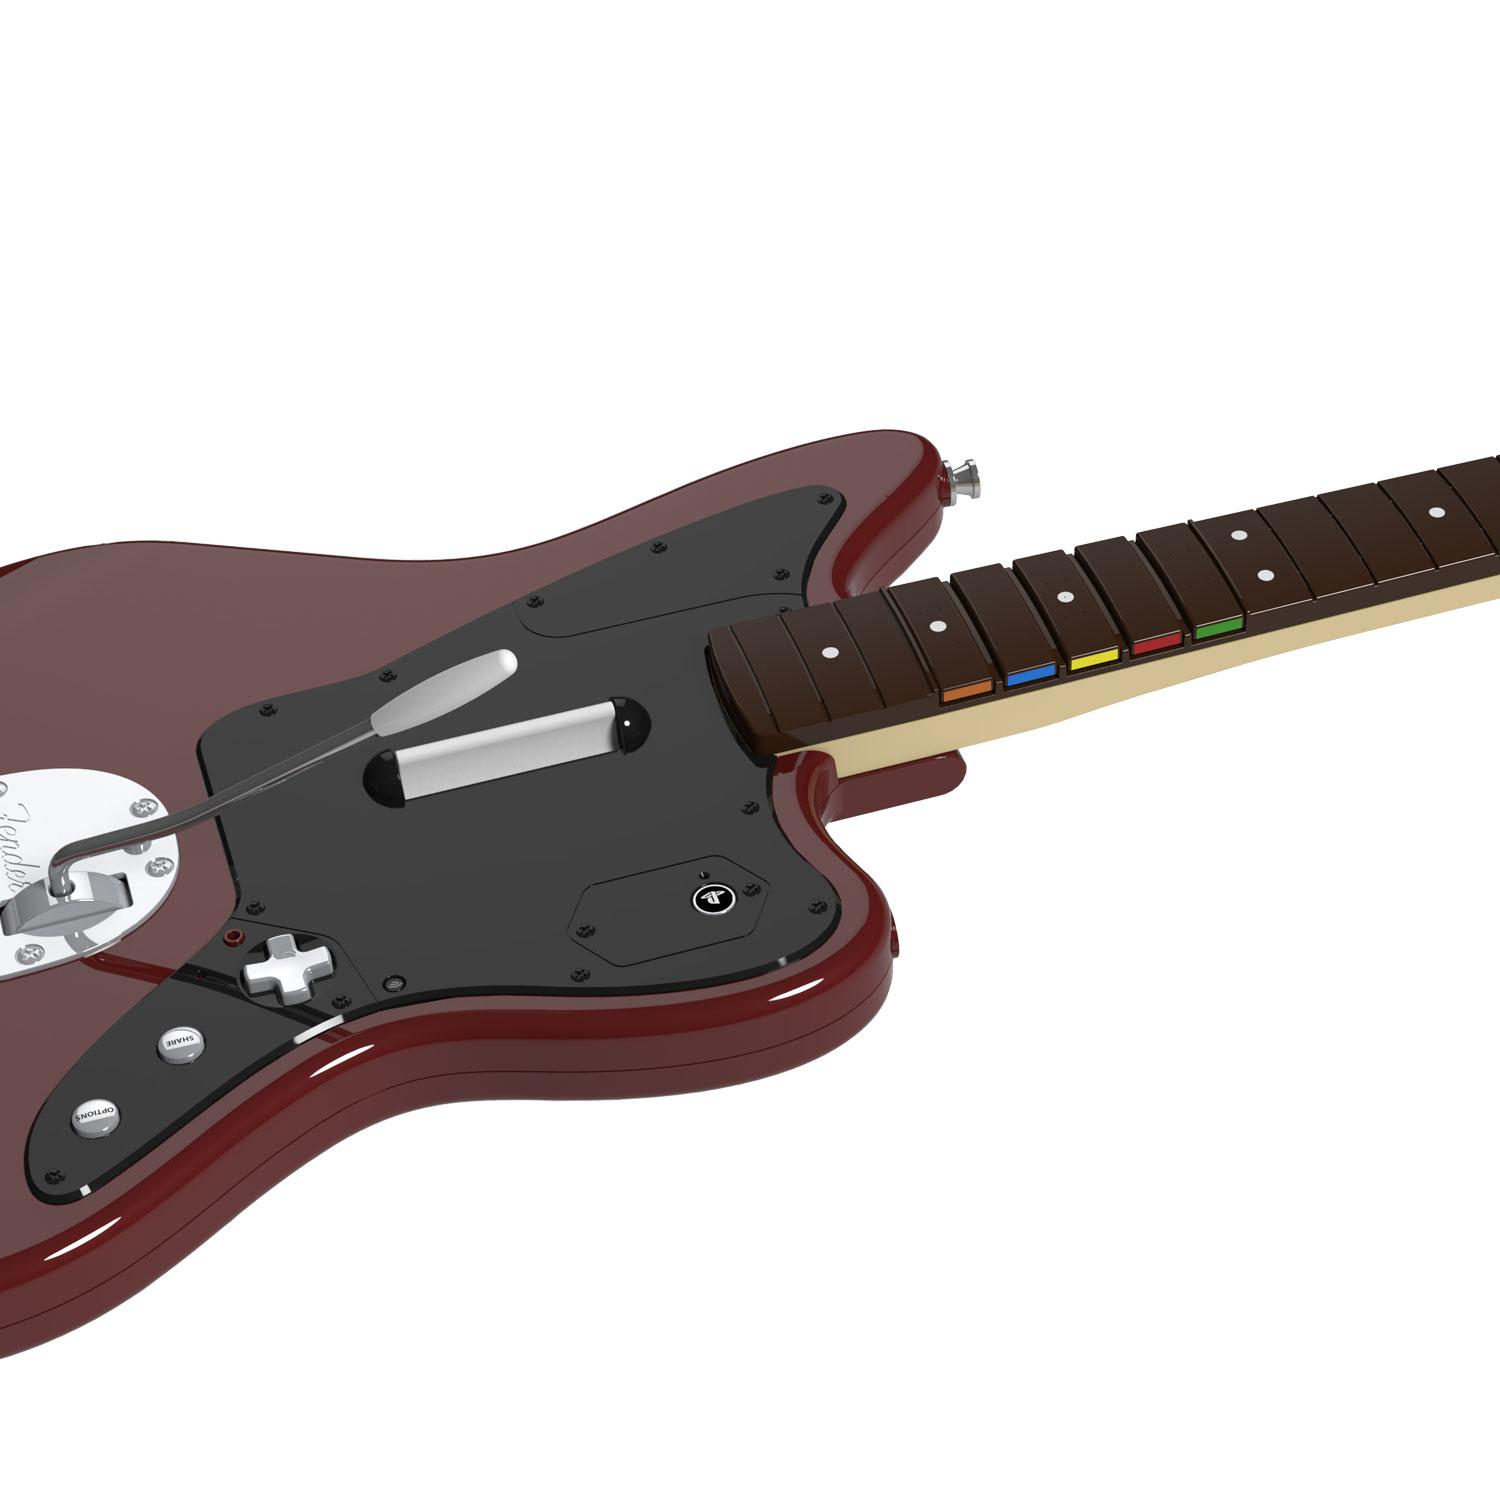 Amazon com: Rock Band Fender Jaguar Guitar Controller for